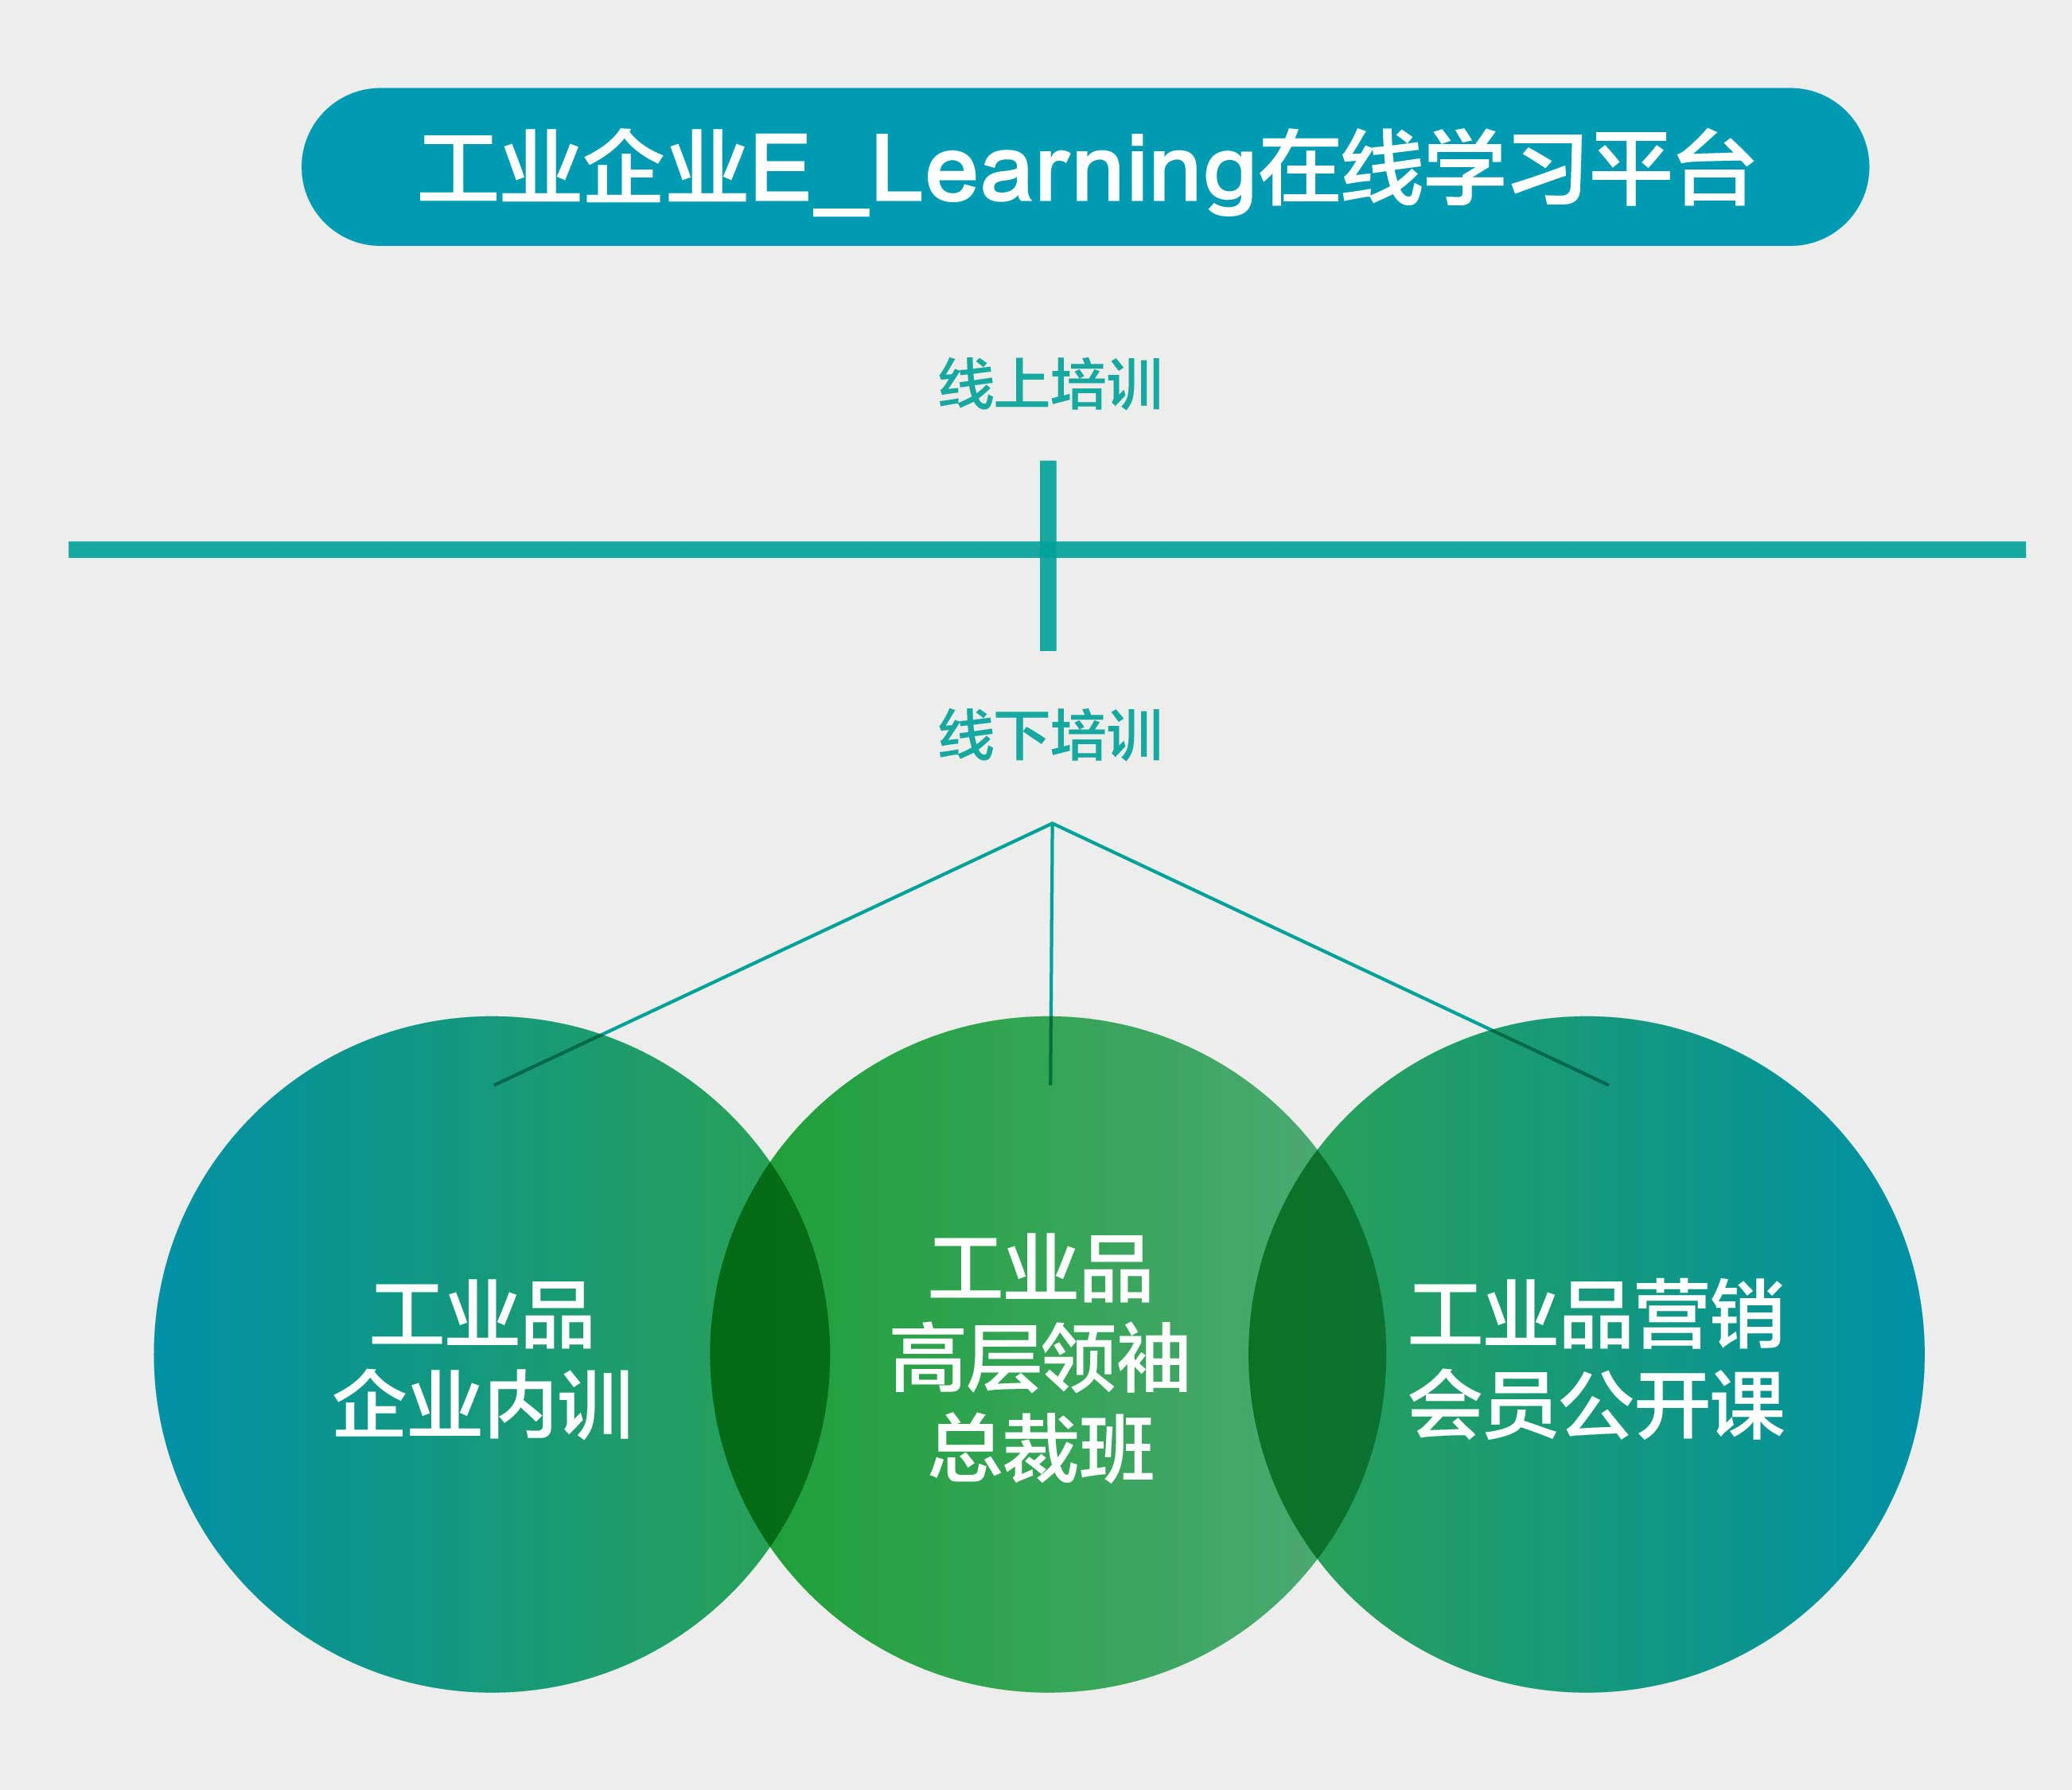 E_learning在线学习平台